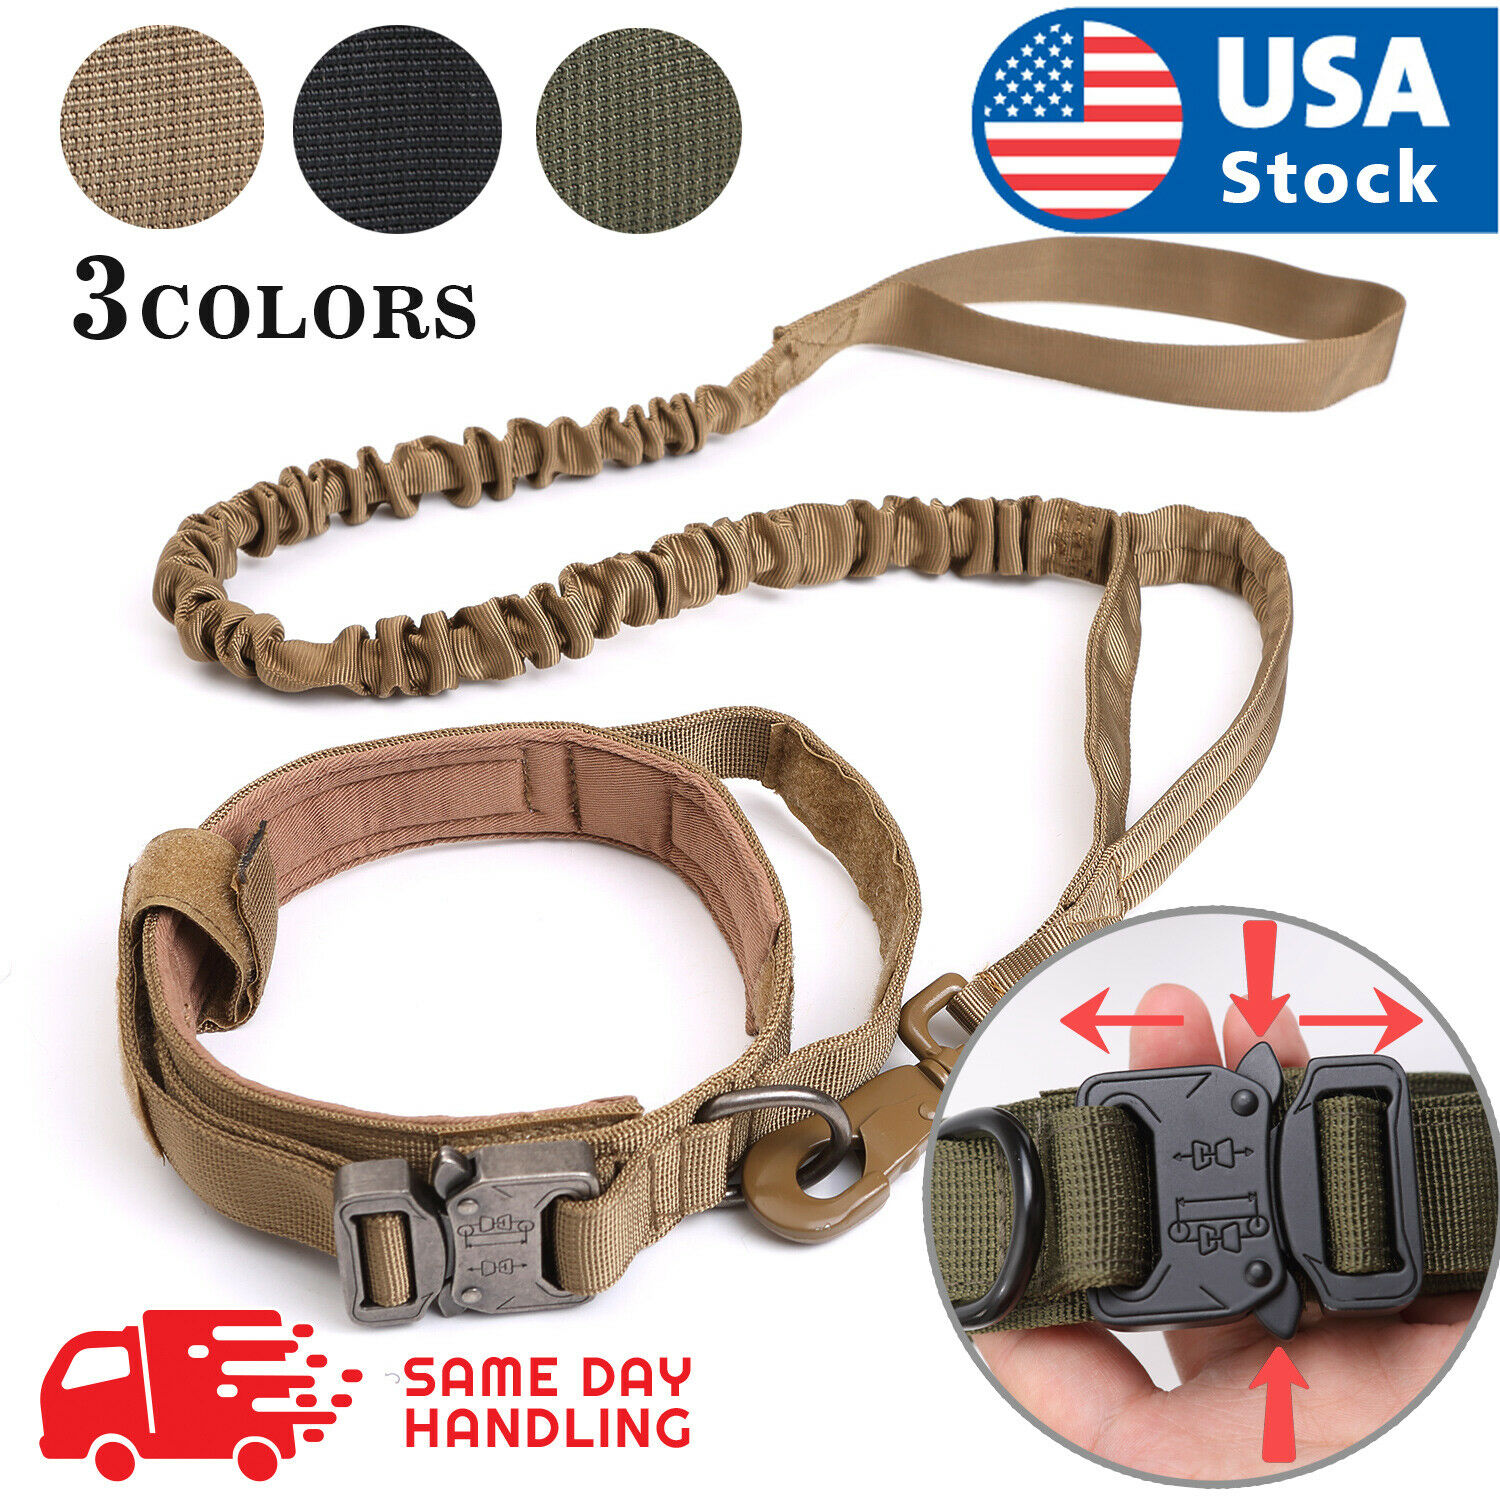 Tactical  K9 Dog Training Collar+Leash with Metal Buckle for L Dog Heavy Duty Collars